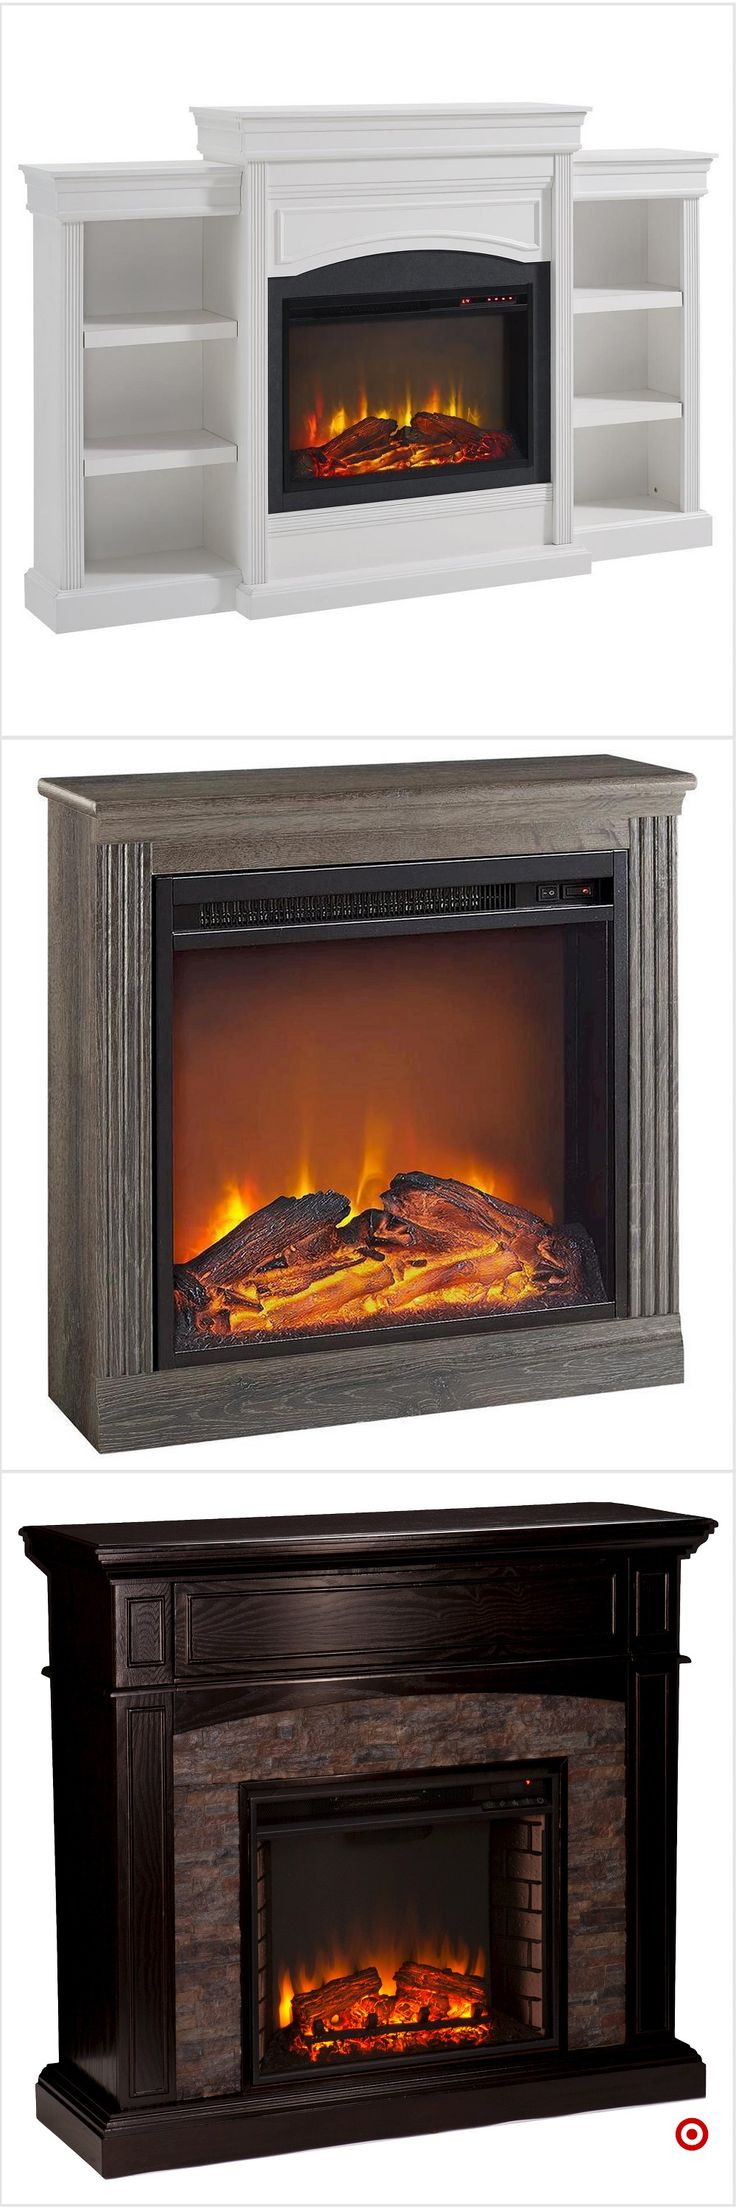 Shop Target for decorative fireplaces you will love at great low prices. Free shipping on orders of $35+ or free same-day pick-up in store.